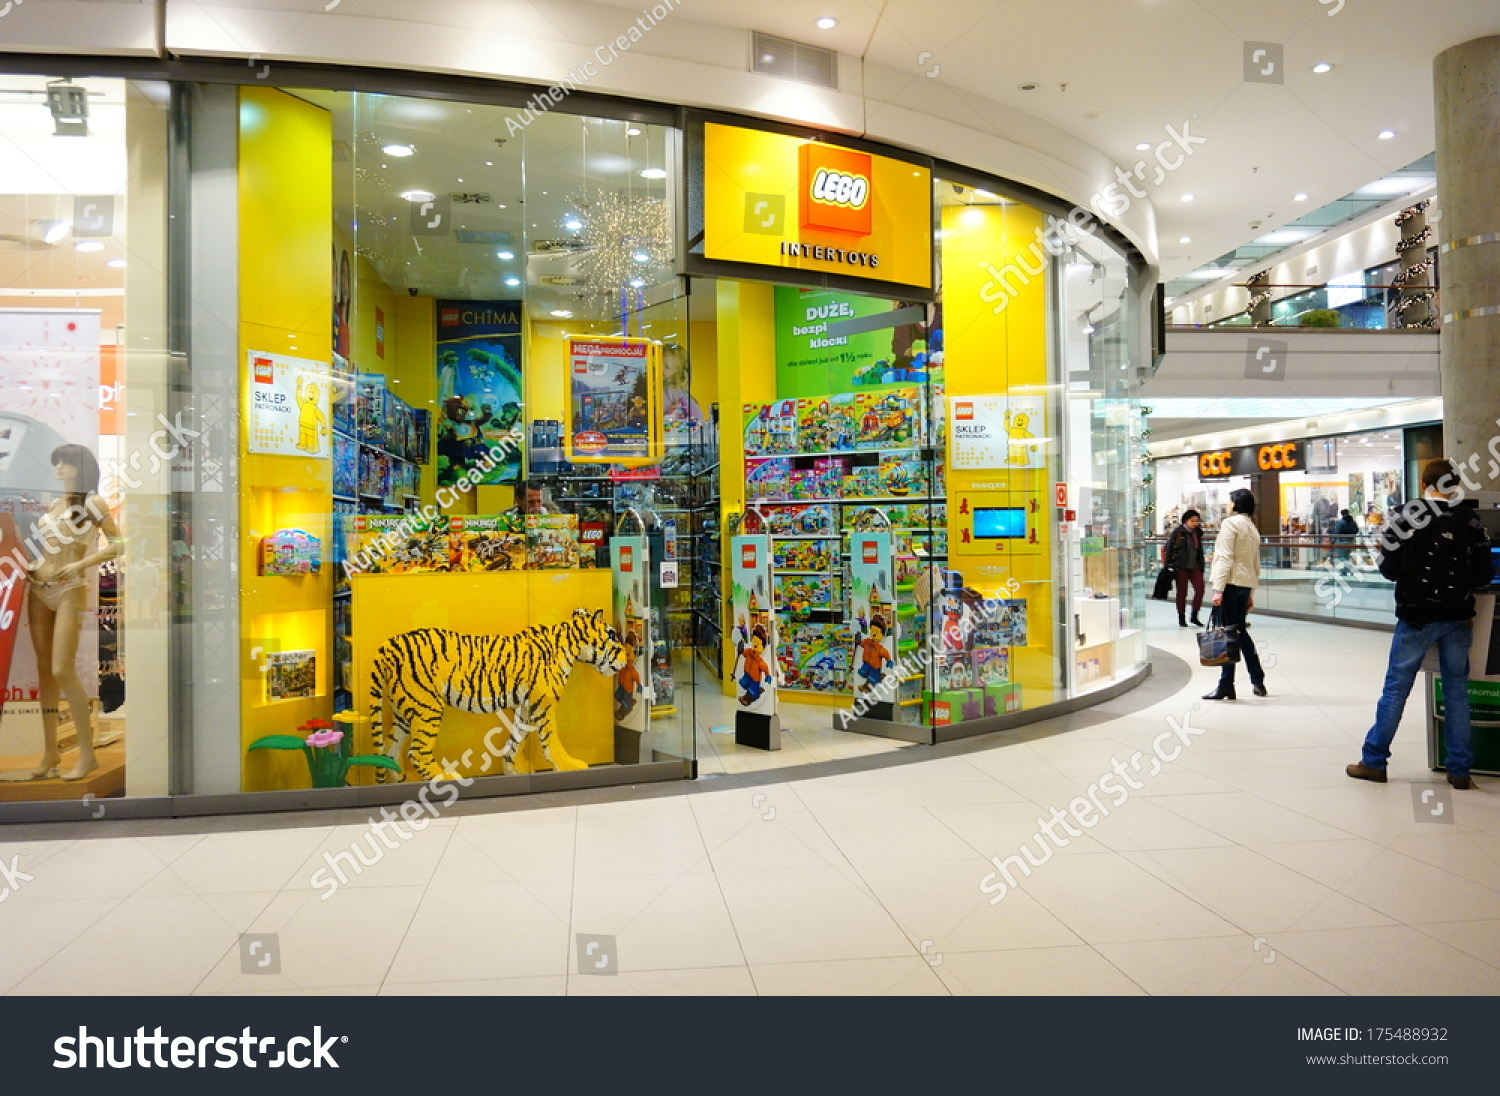 Poznan Poland November 29 2013 Lego Toys Shop In The Malta Shopping Mall Stock Photo